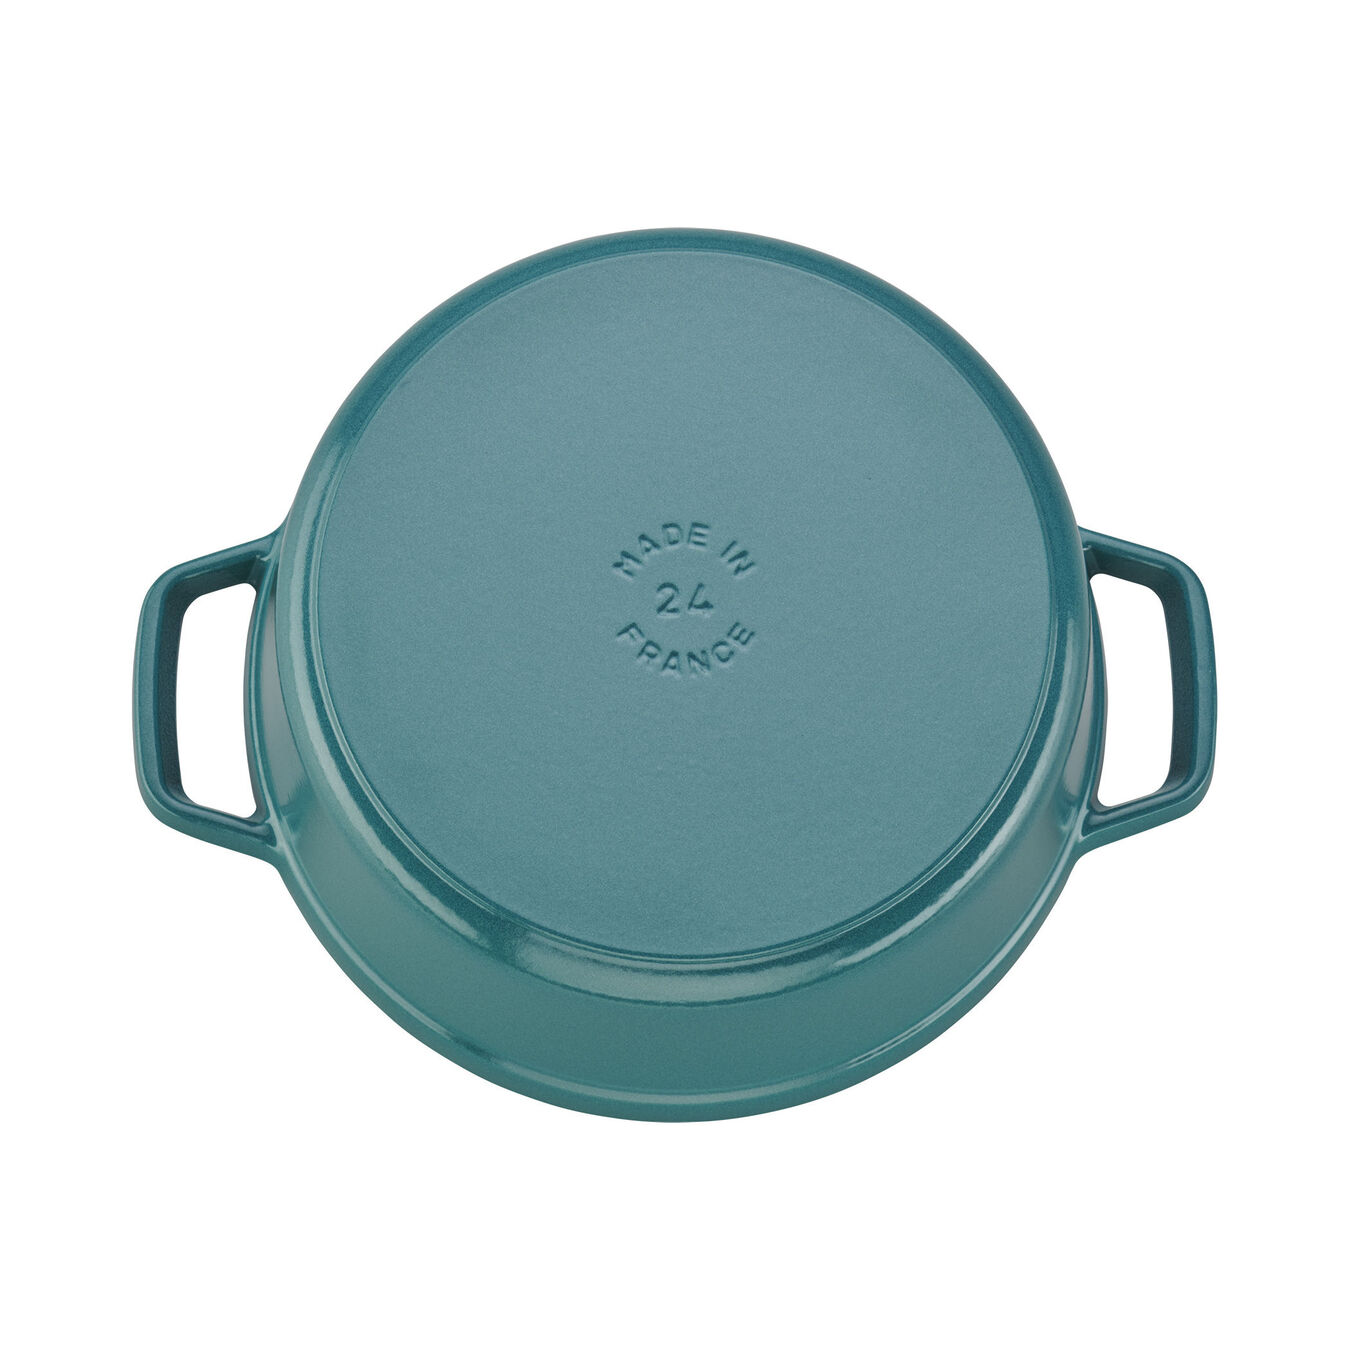 3.75 l Cast iron round Cocotte, Mint-Green,,large 2